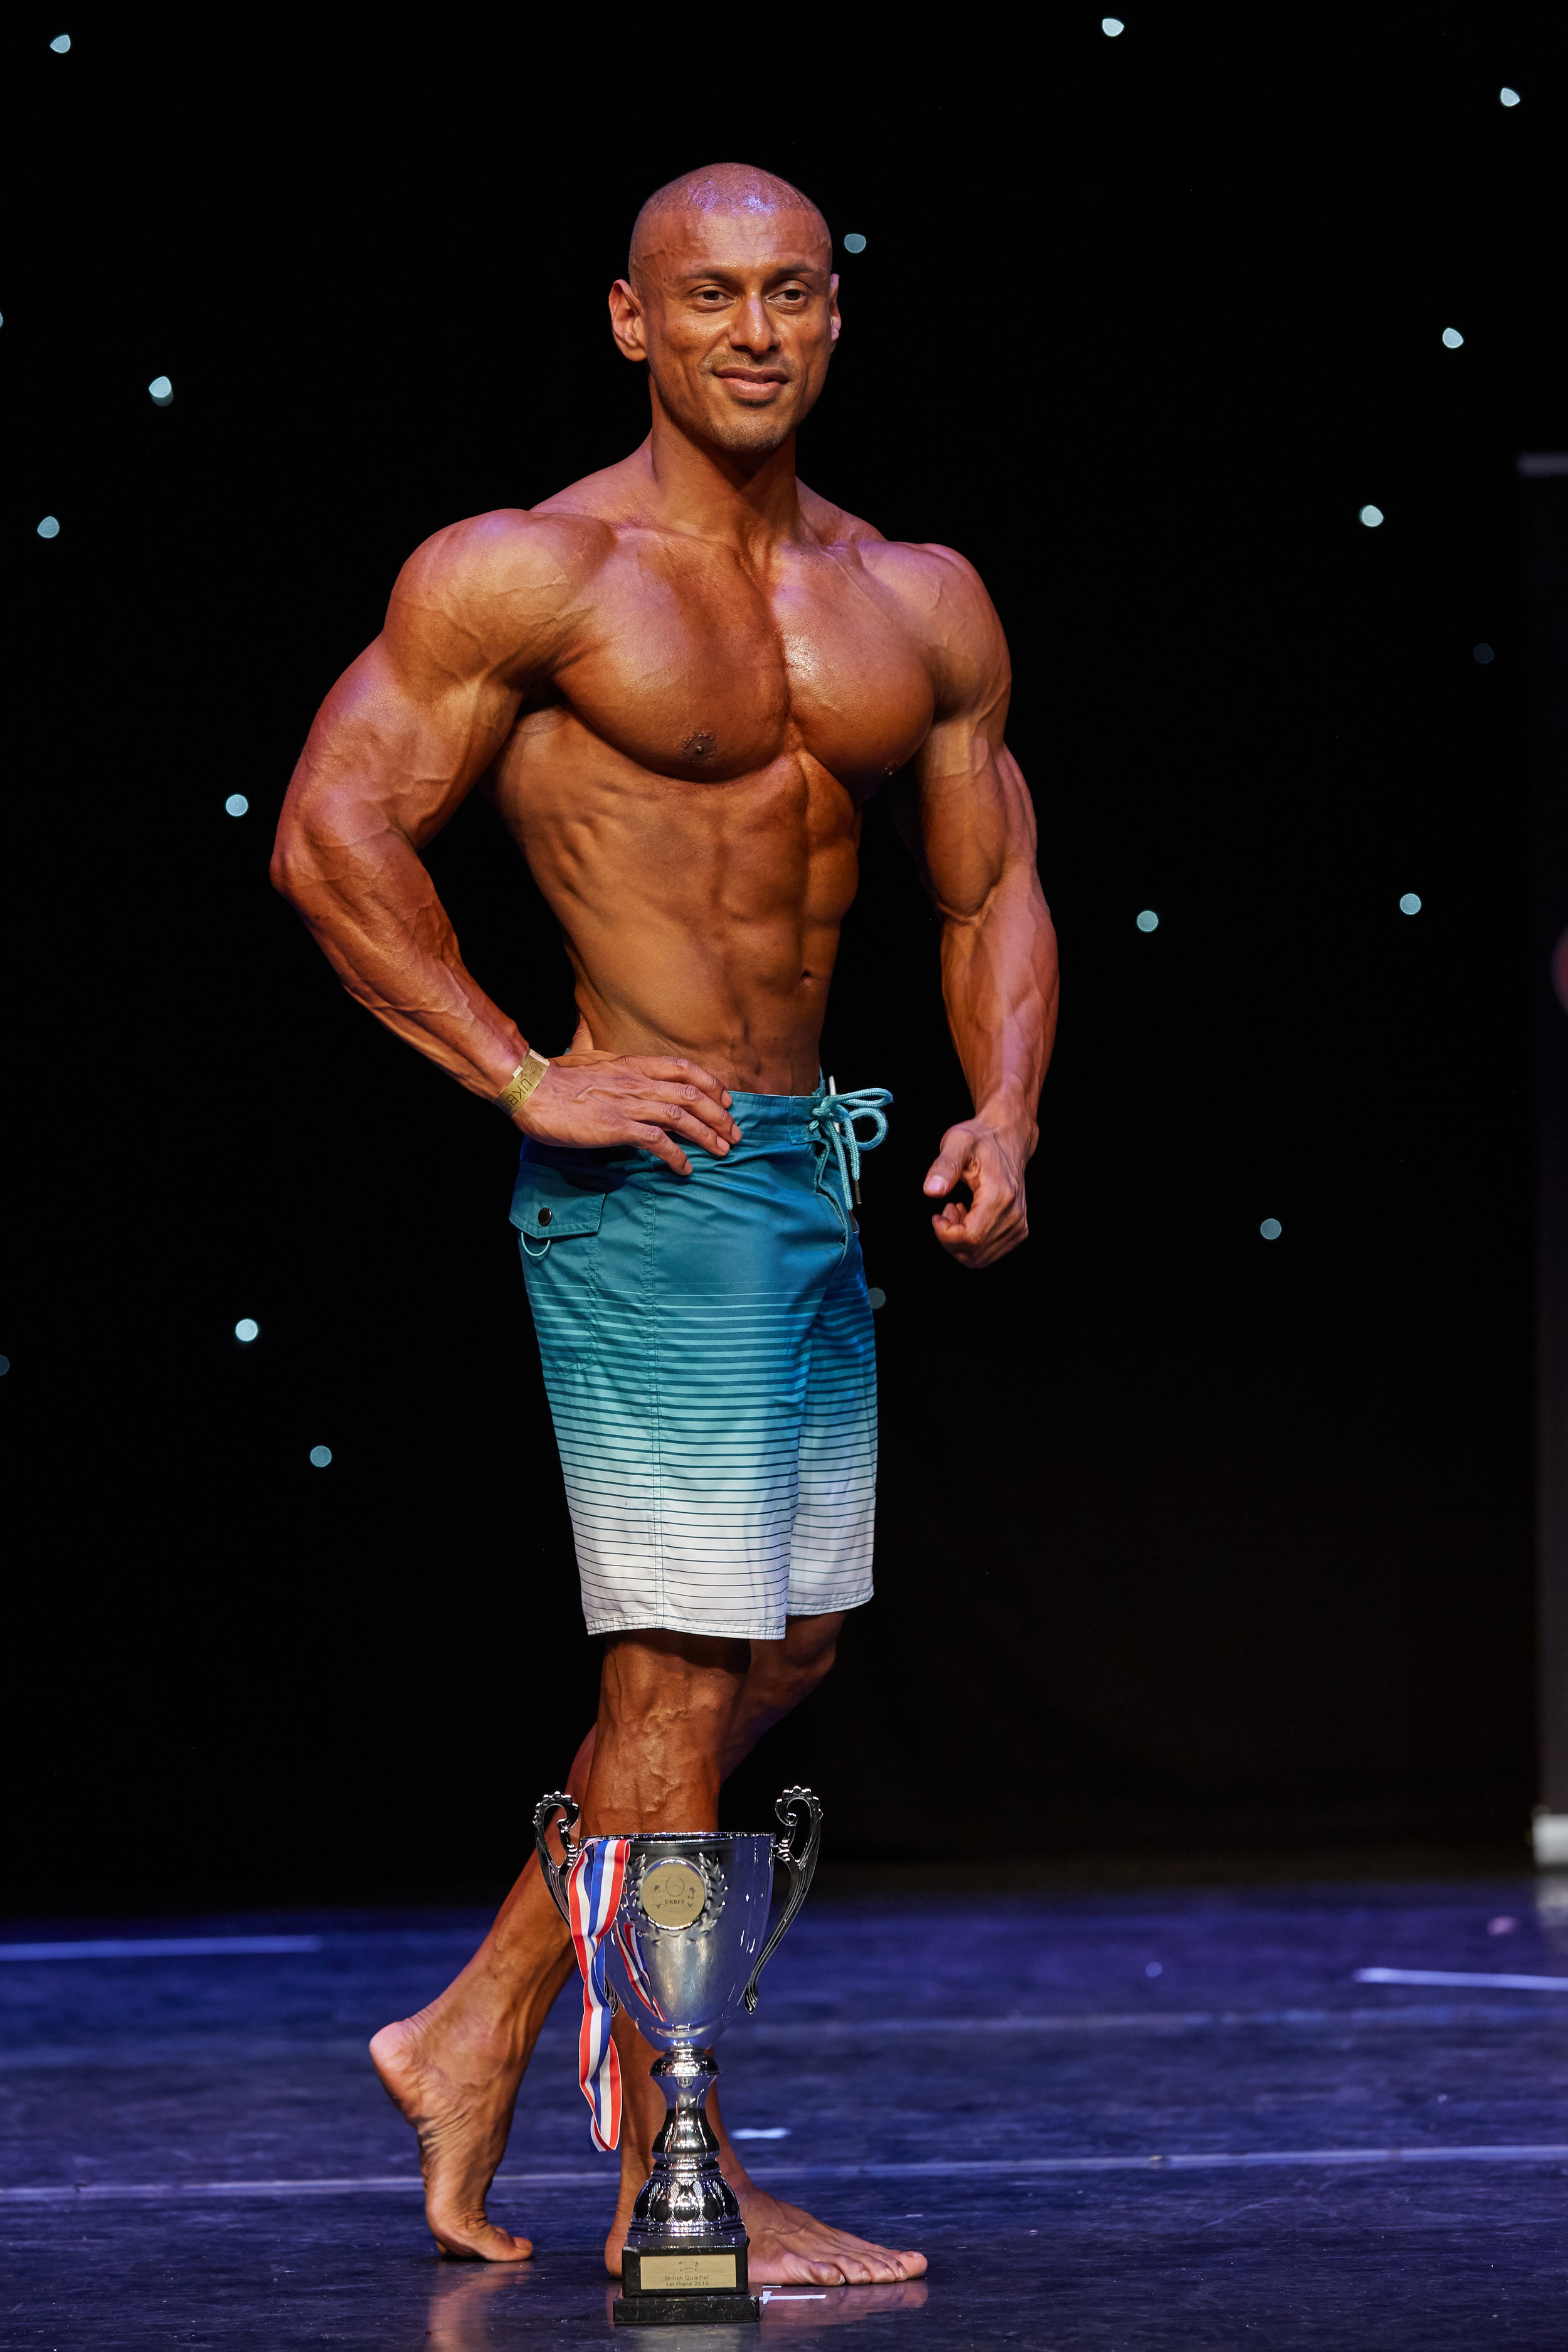 Miz Rahman wins muscular men's physique.